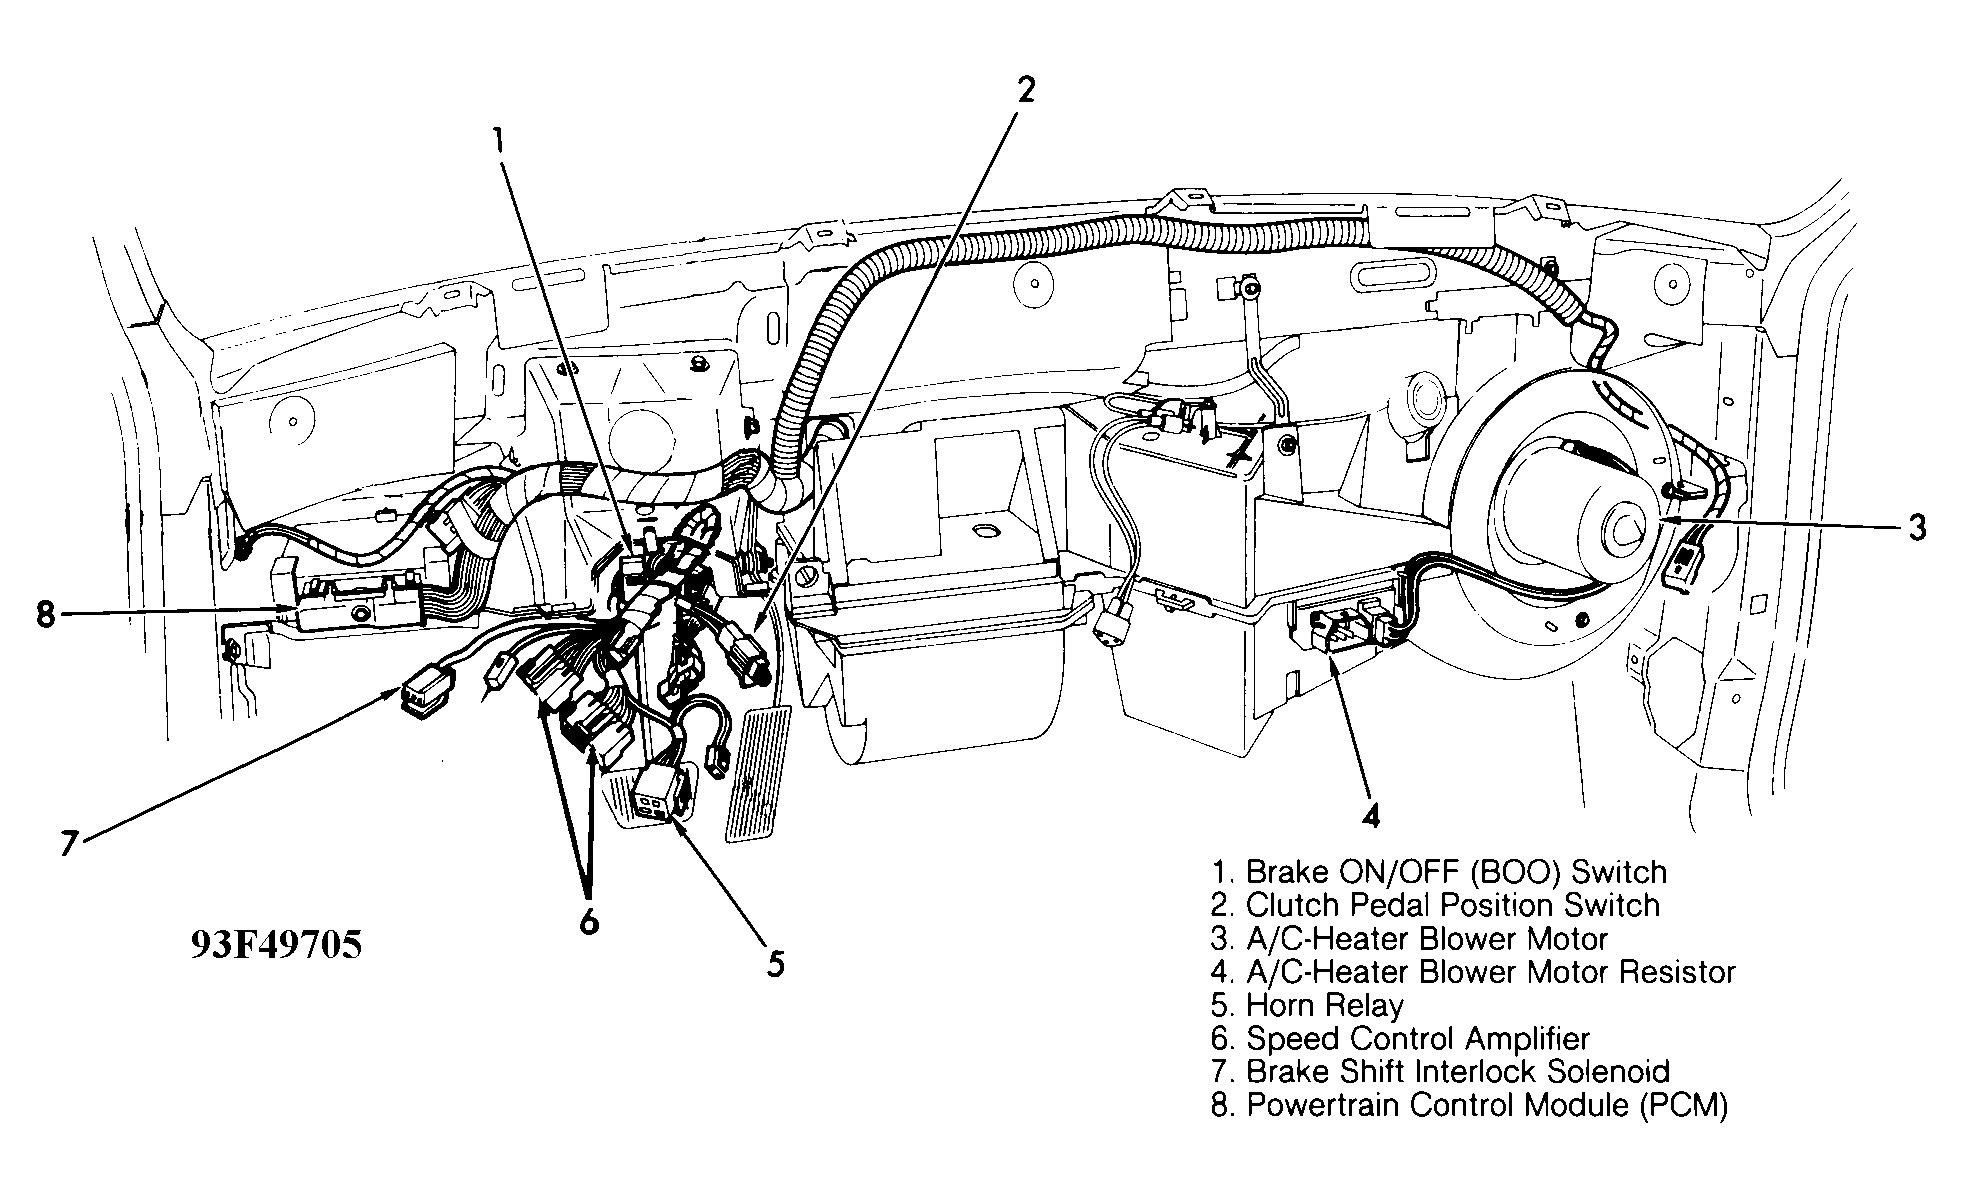 hight resolution of 1990 ford tempo solenoid diagram auto electrical wiring diagram u2022 1995 ford tempo interior 1990